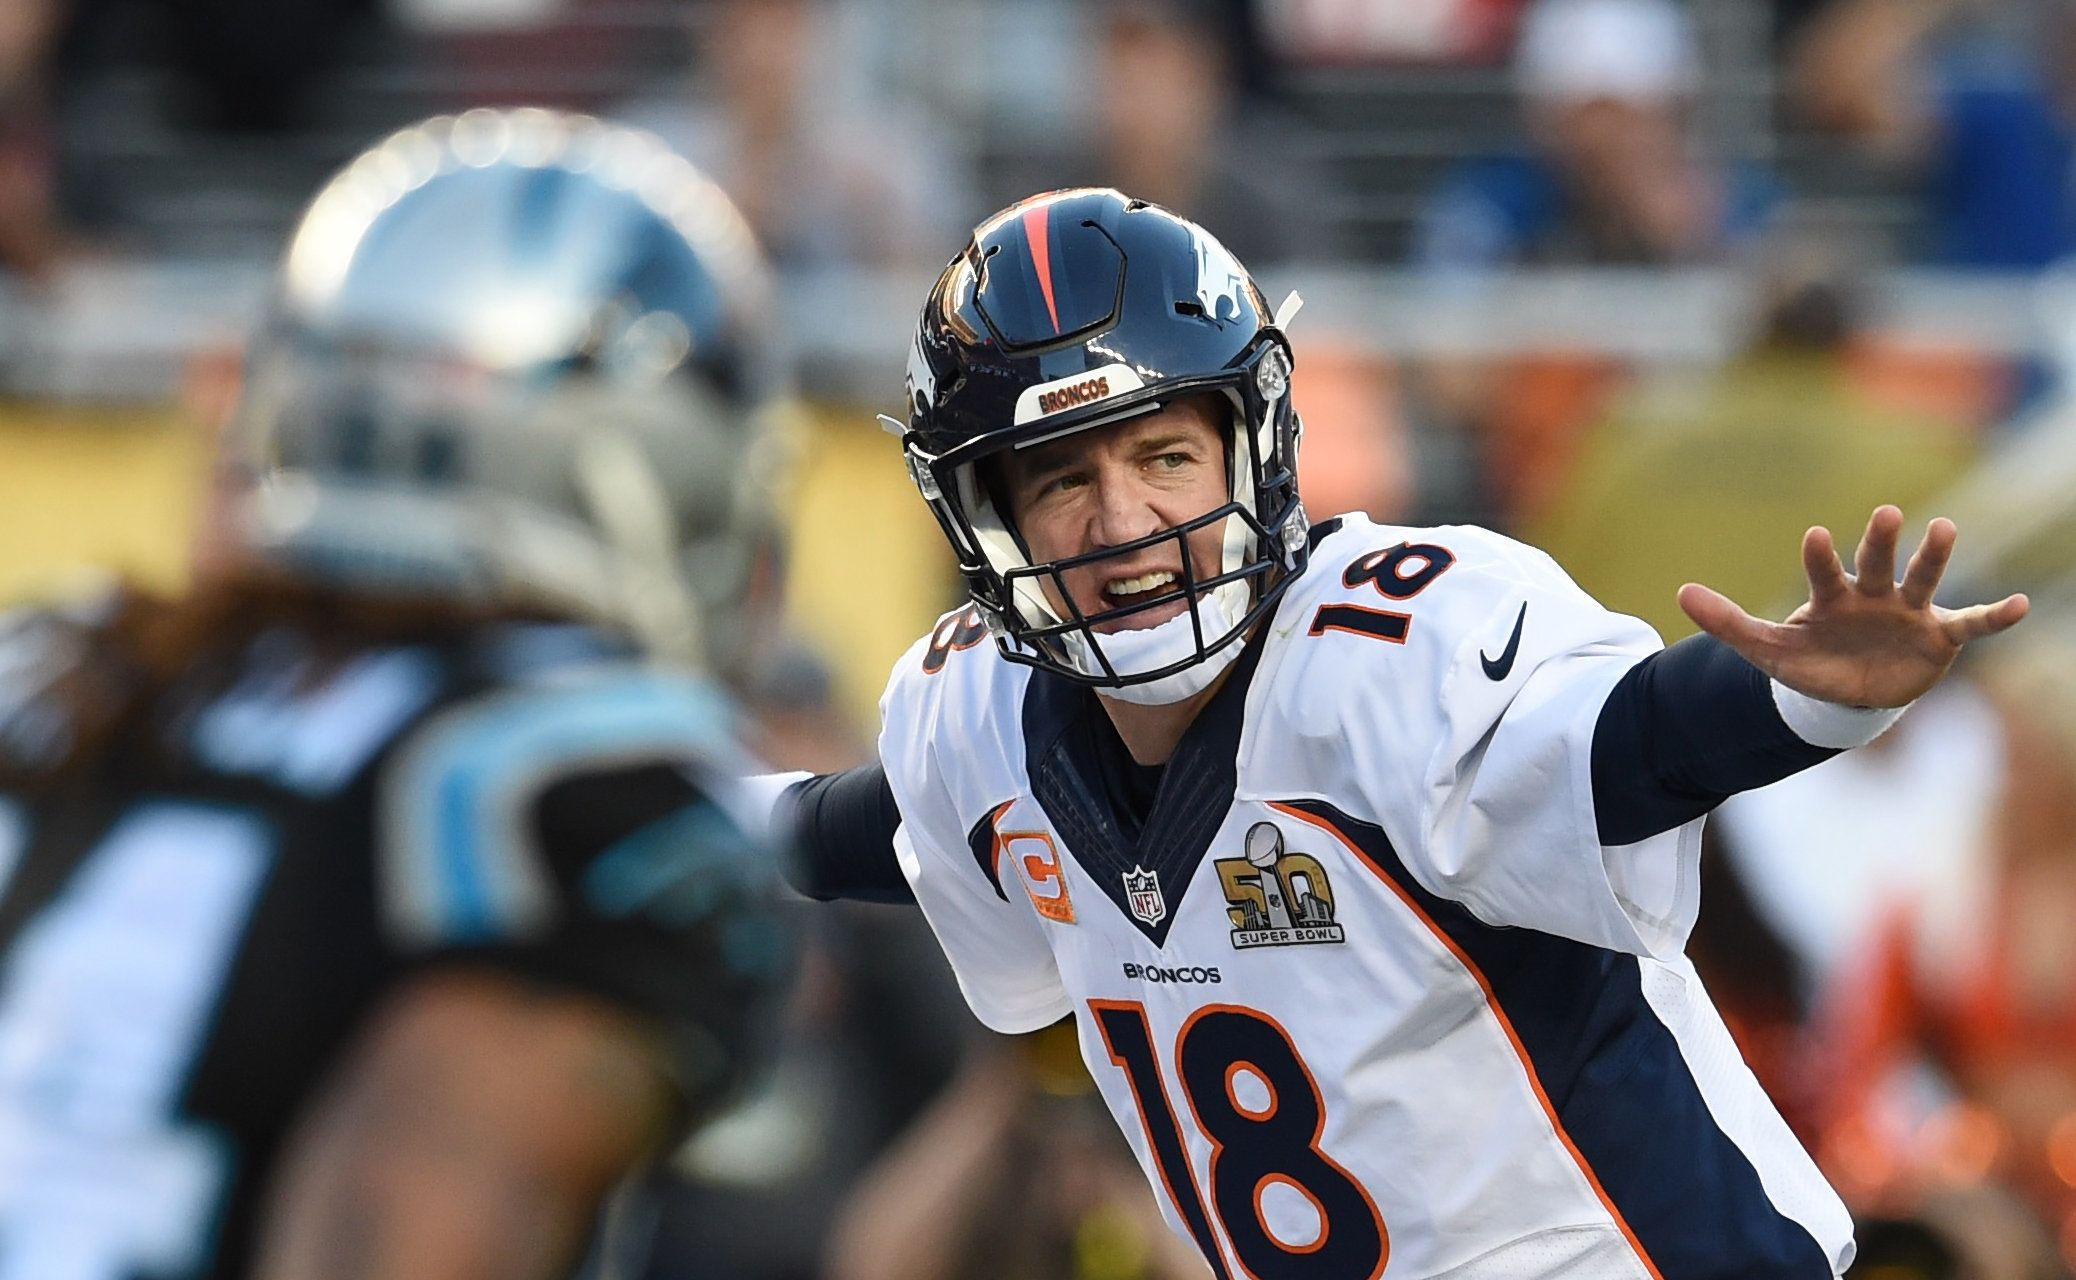 Quarterback Peyton Manning of Denver Broncos calls the play during Super Bowl 50 against the Carolina Panthers at Levi's Stadium in Santa Clara, California, on February 7, 2016. / AFP / TIMOTHY A. CLARY        (Photo credit should read TIMOTHY A. CLARY/AFP/Getty Images)